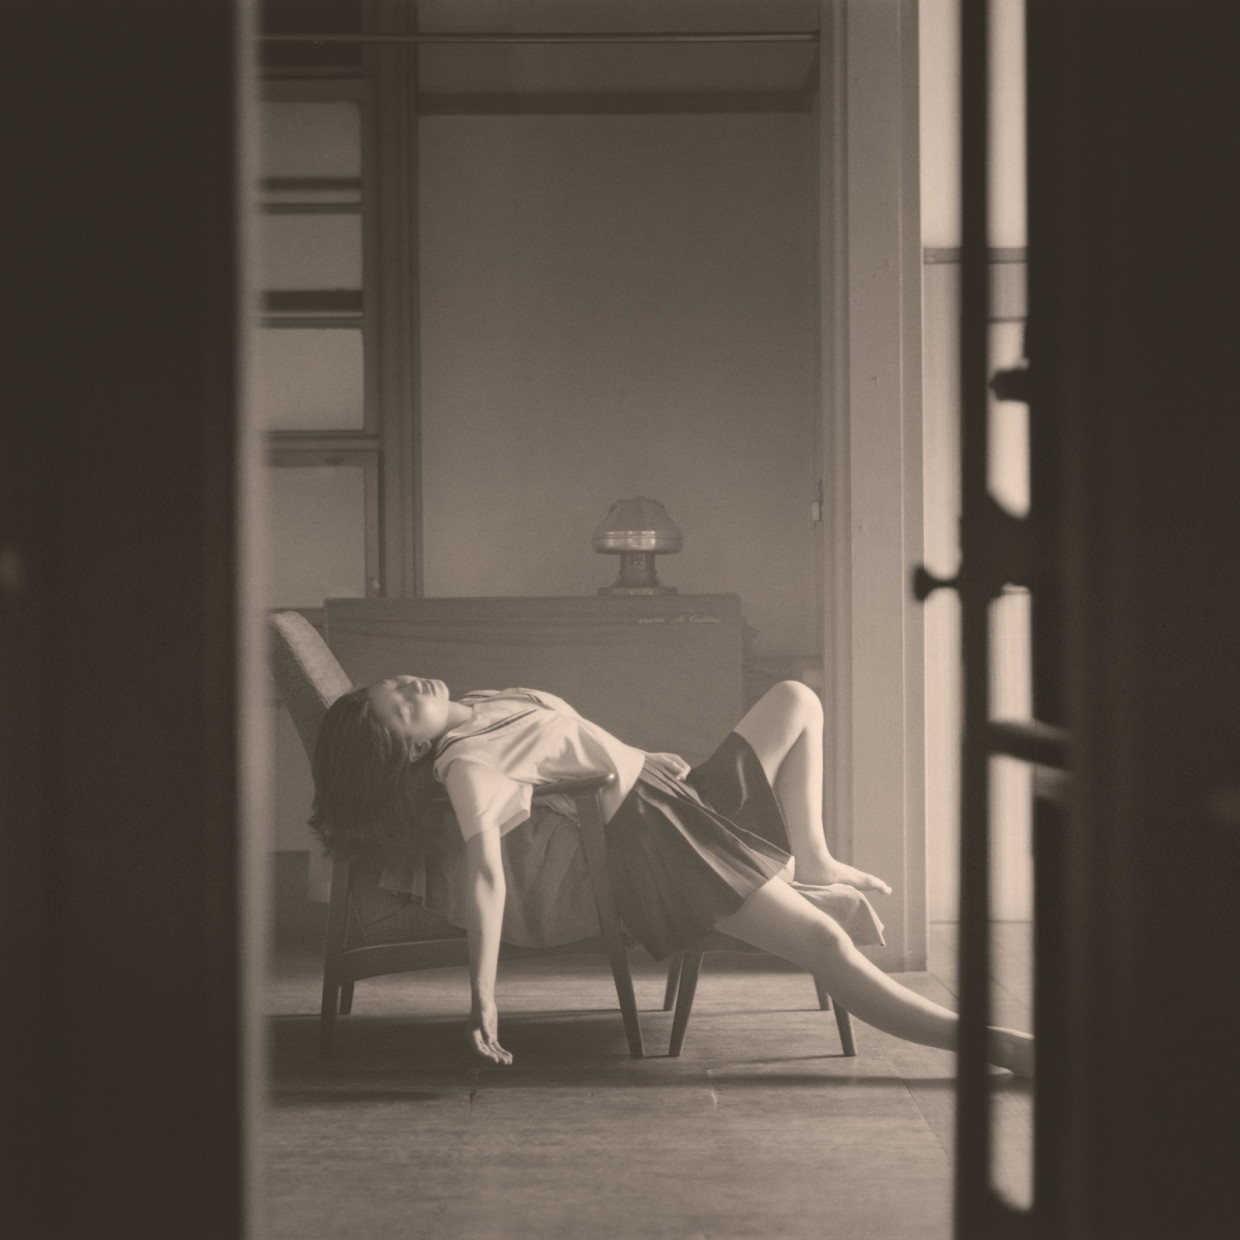 Linking Body and Desire by Photography: 'Body / Desire - Wang Jun's Photography Collection' Curator: Gu Zheng We are pleased...